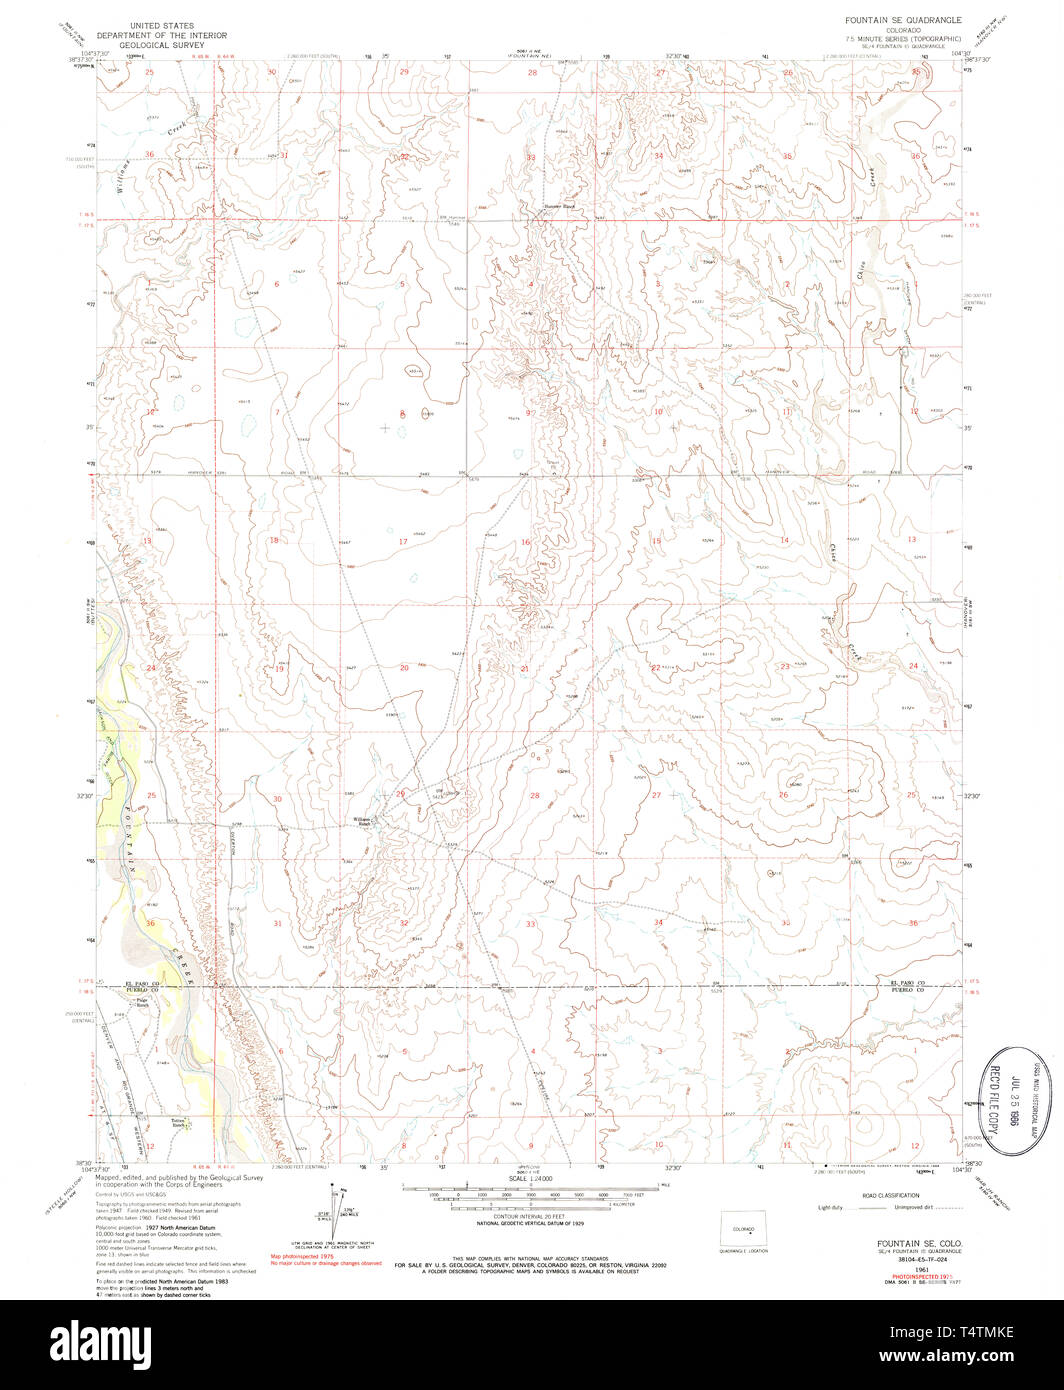 USGS TOPO Map Colorado CO Fountain SE 233025 1961 24000 ... Topographical Maps Of Colorado Fountain on